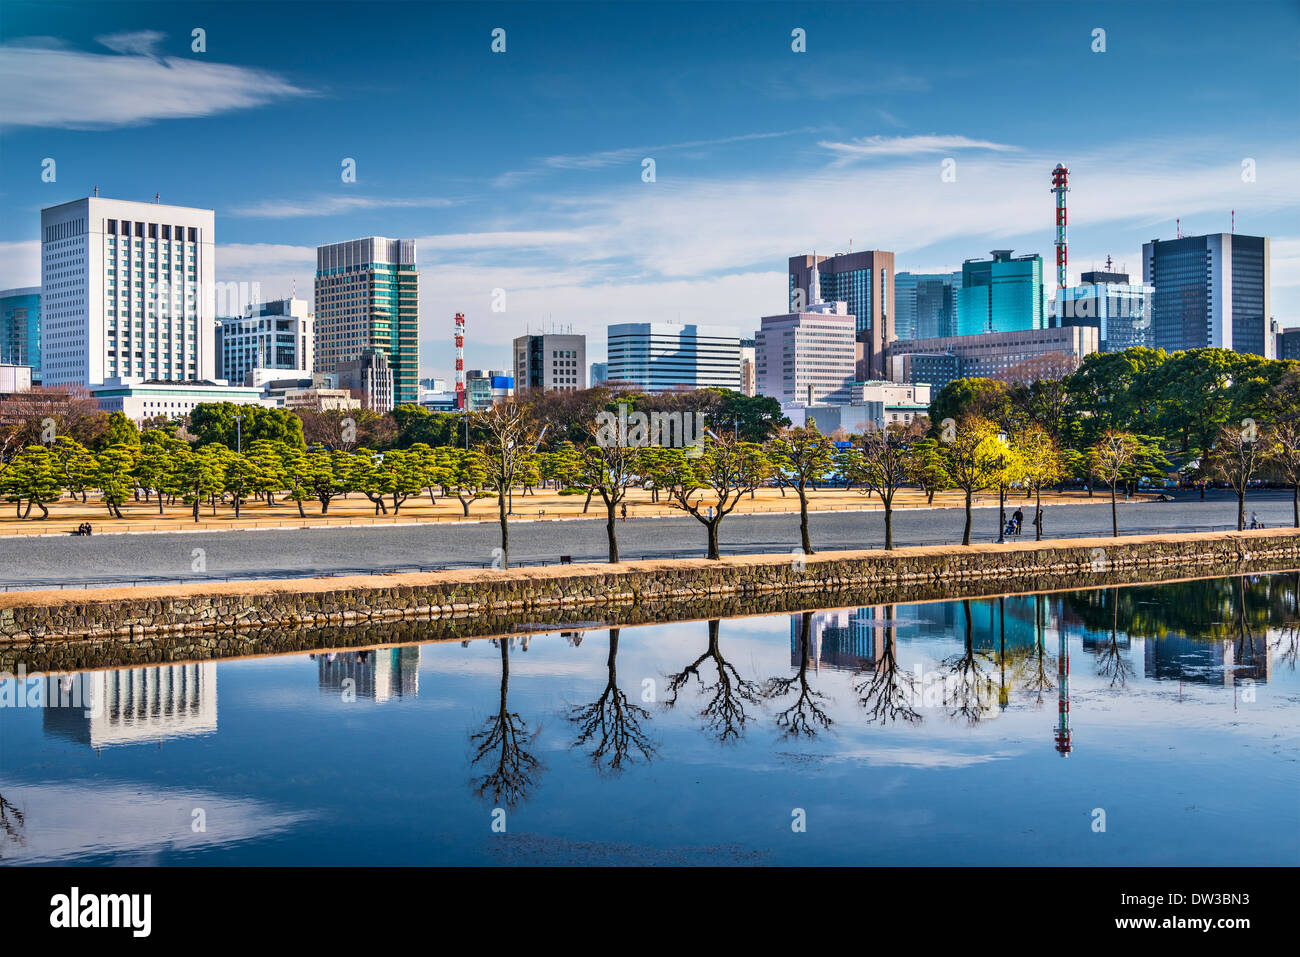 Tokyo, Japan cityscape at Marunouchi business district. - Stock Image